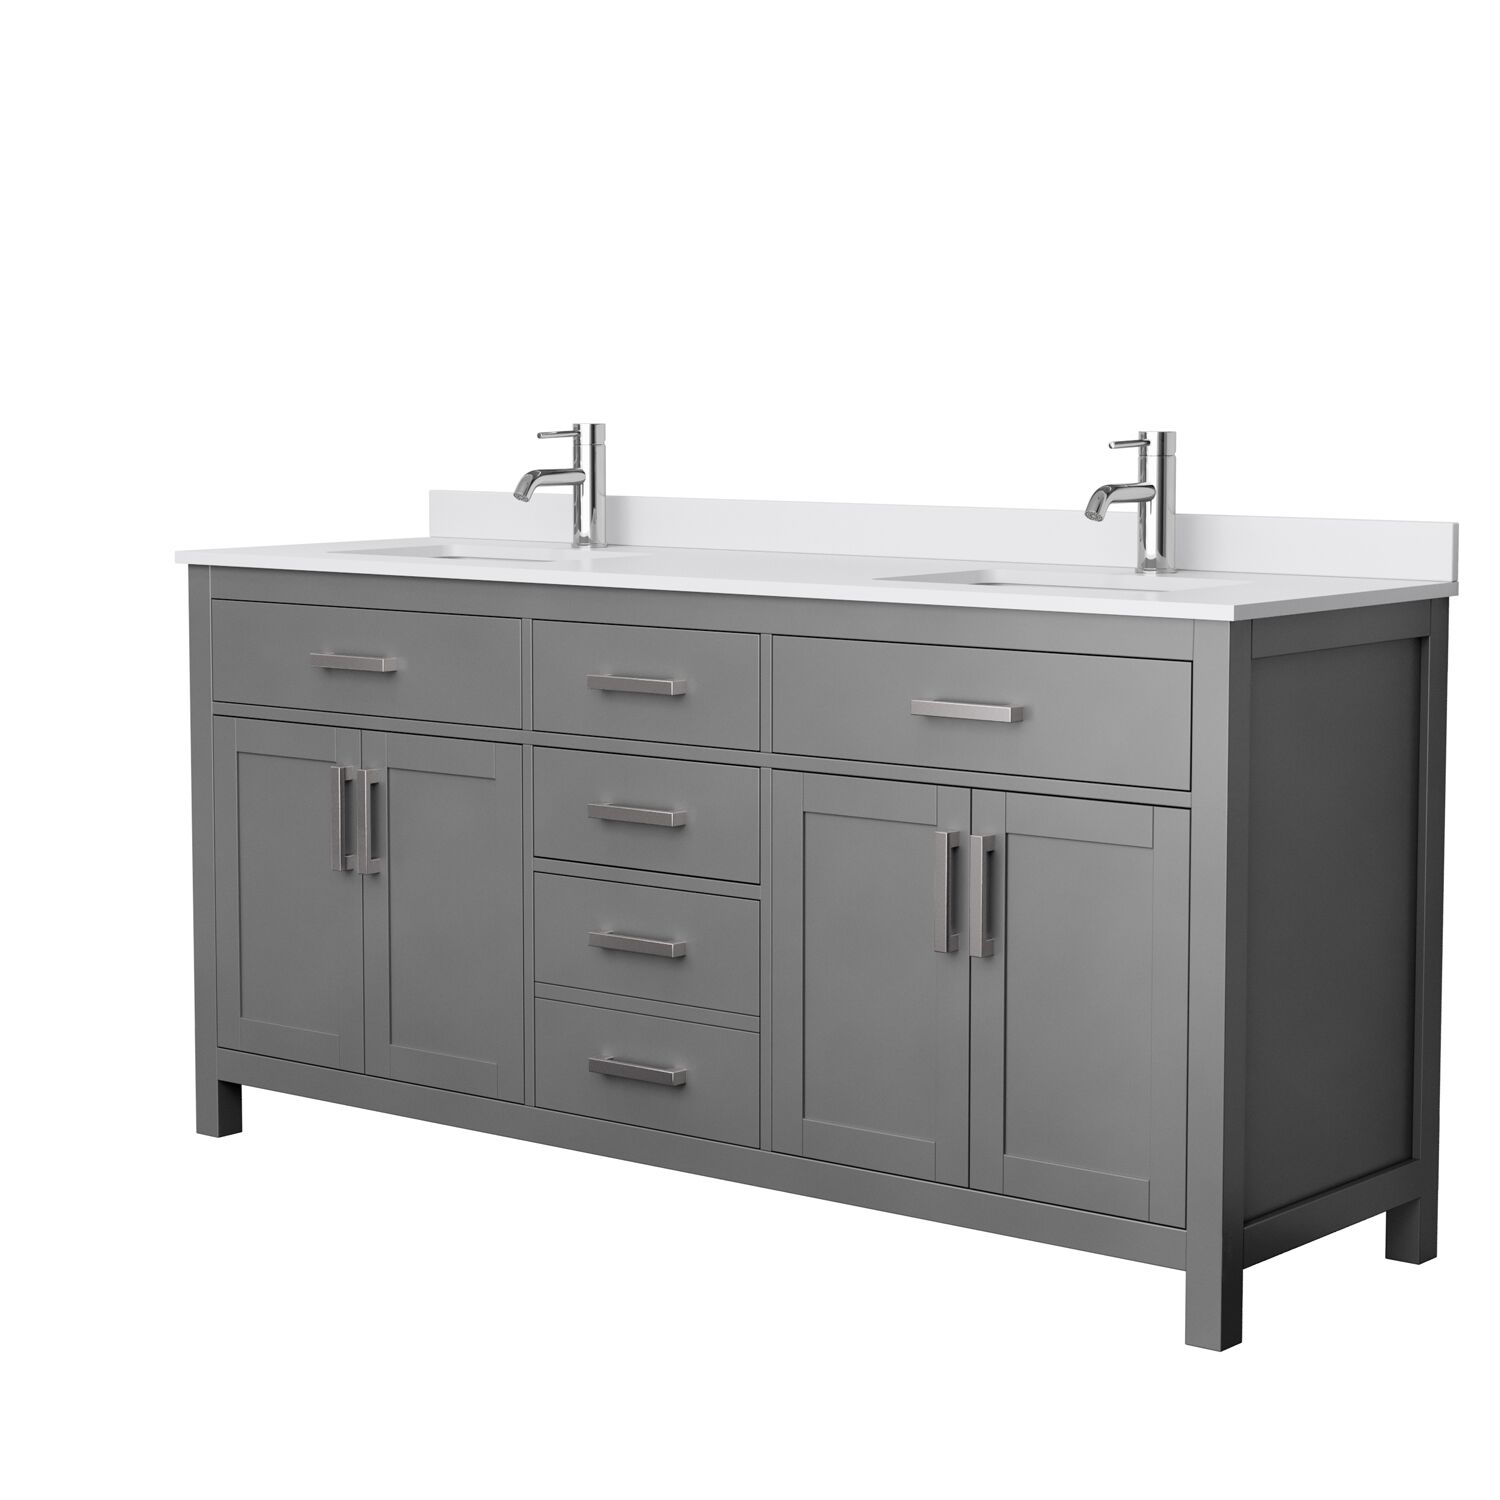 "72"" Double Bathroom Vanity in Dark Gray, White Cultured Marble Countertop, Undermount Square Sinks, No Mirror"